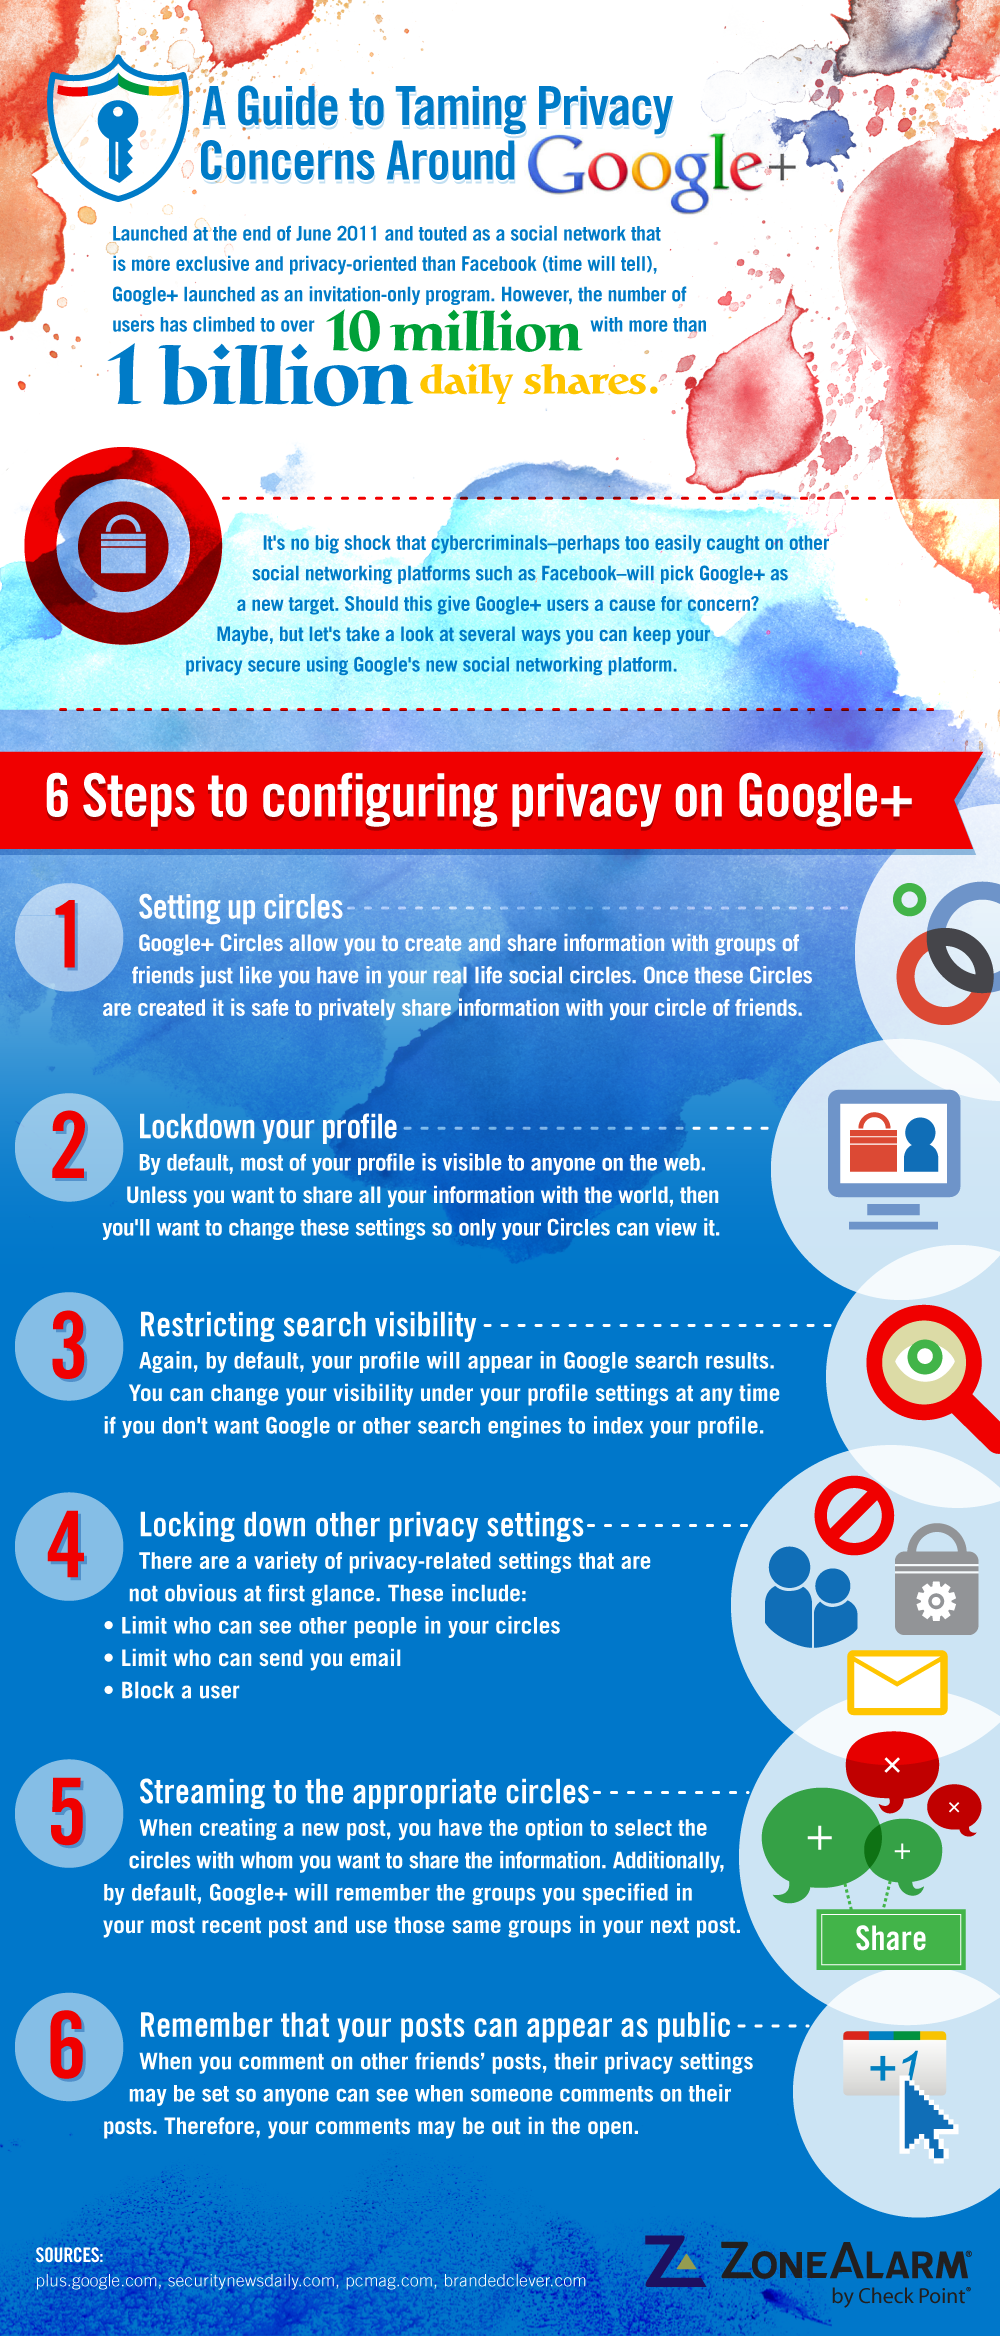 6 Steps to Configuring Privacy on Google+ [Infographic] 6 Steps to Configuring Privacy on Google+ [Infographic] 6 Steps to Configuring Privacy on Google+ A Guide to Taming Privacy Concerns Around Google